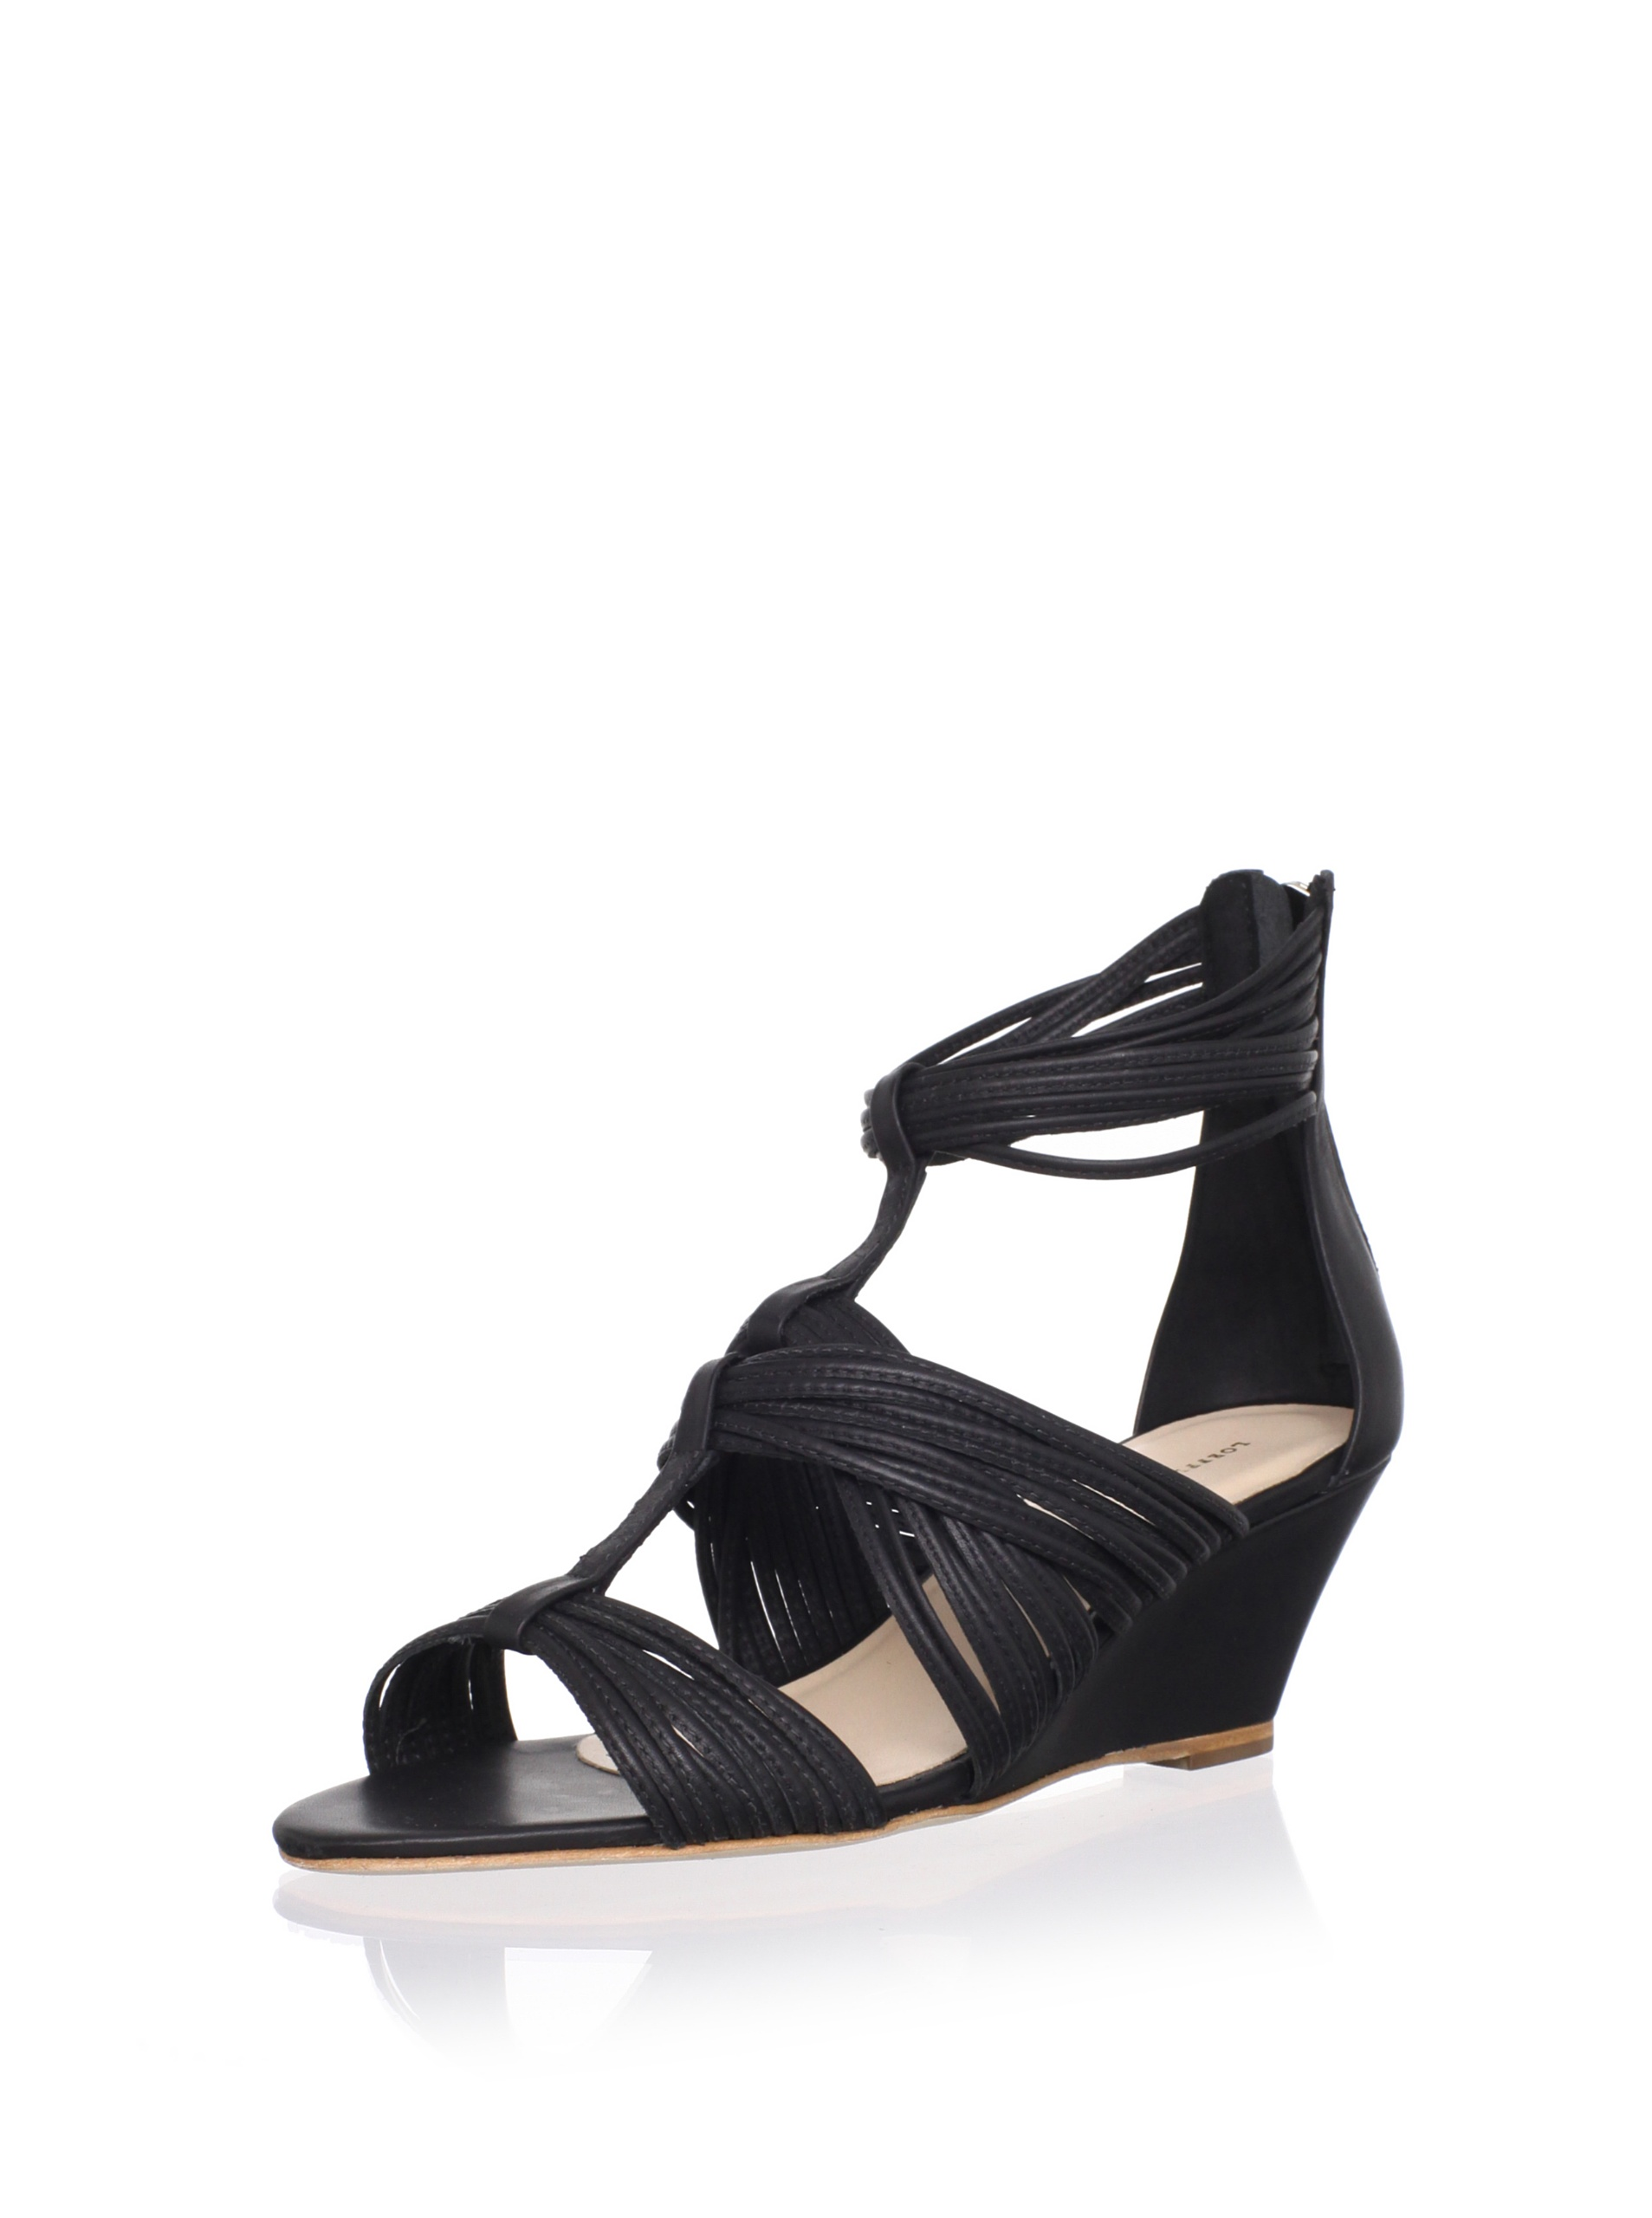 Loeffler Randall Women's Anja Wedge Sandal (Black)